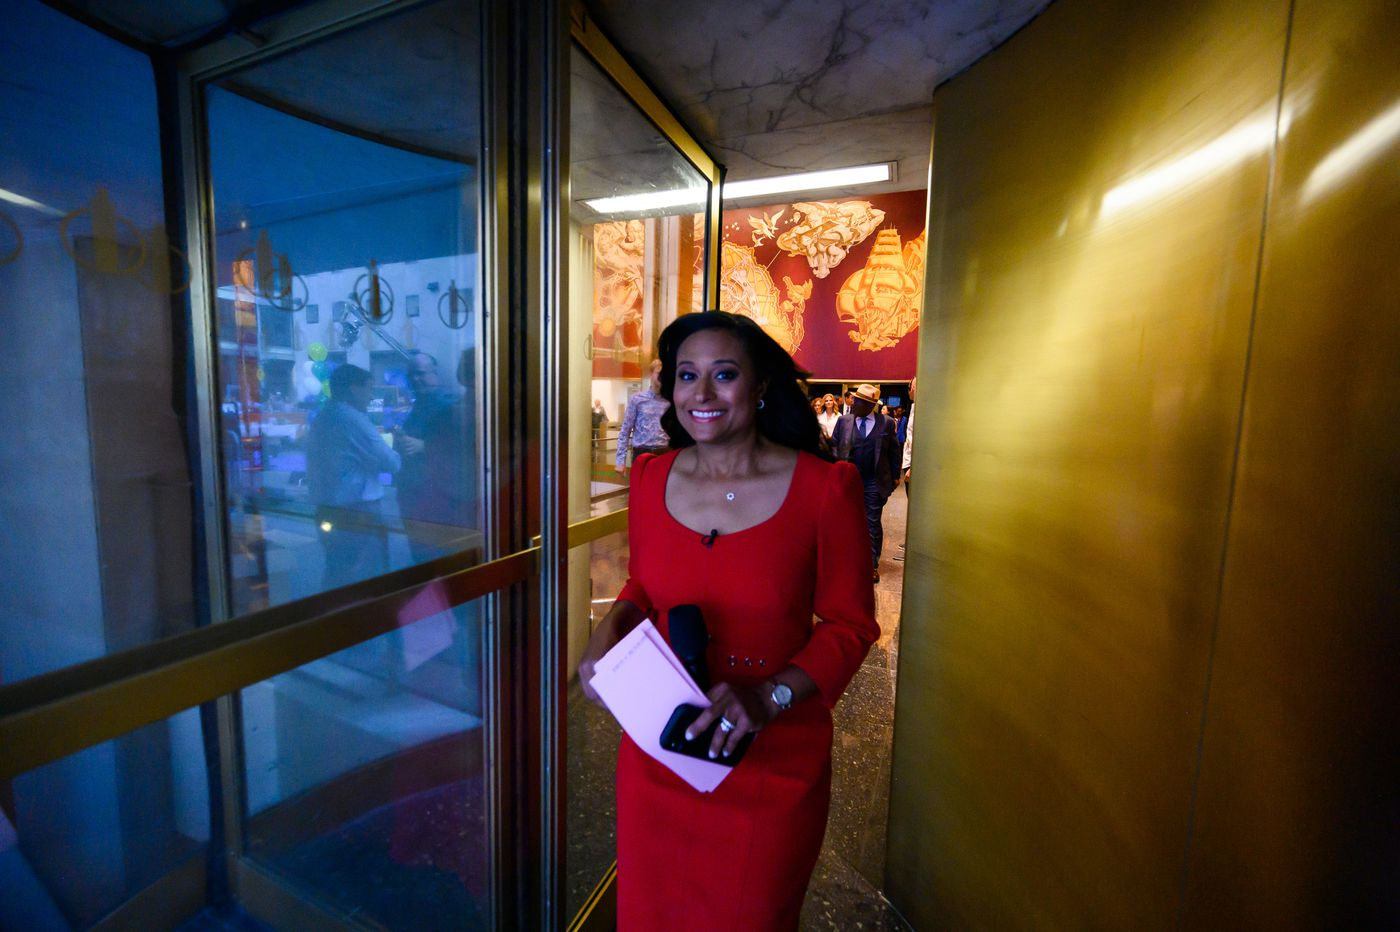 Philly native Kristen Welker joins 'Today' show anchor team